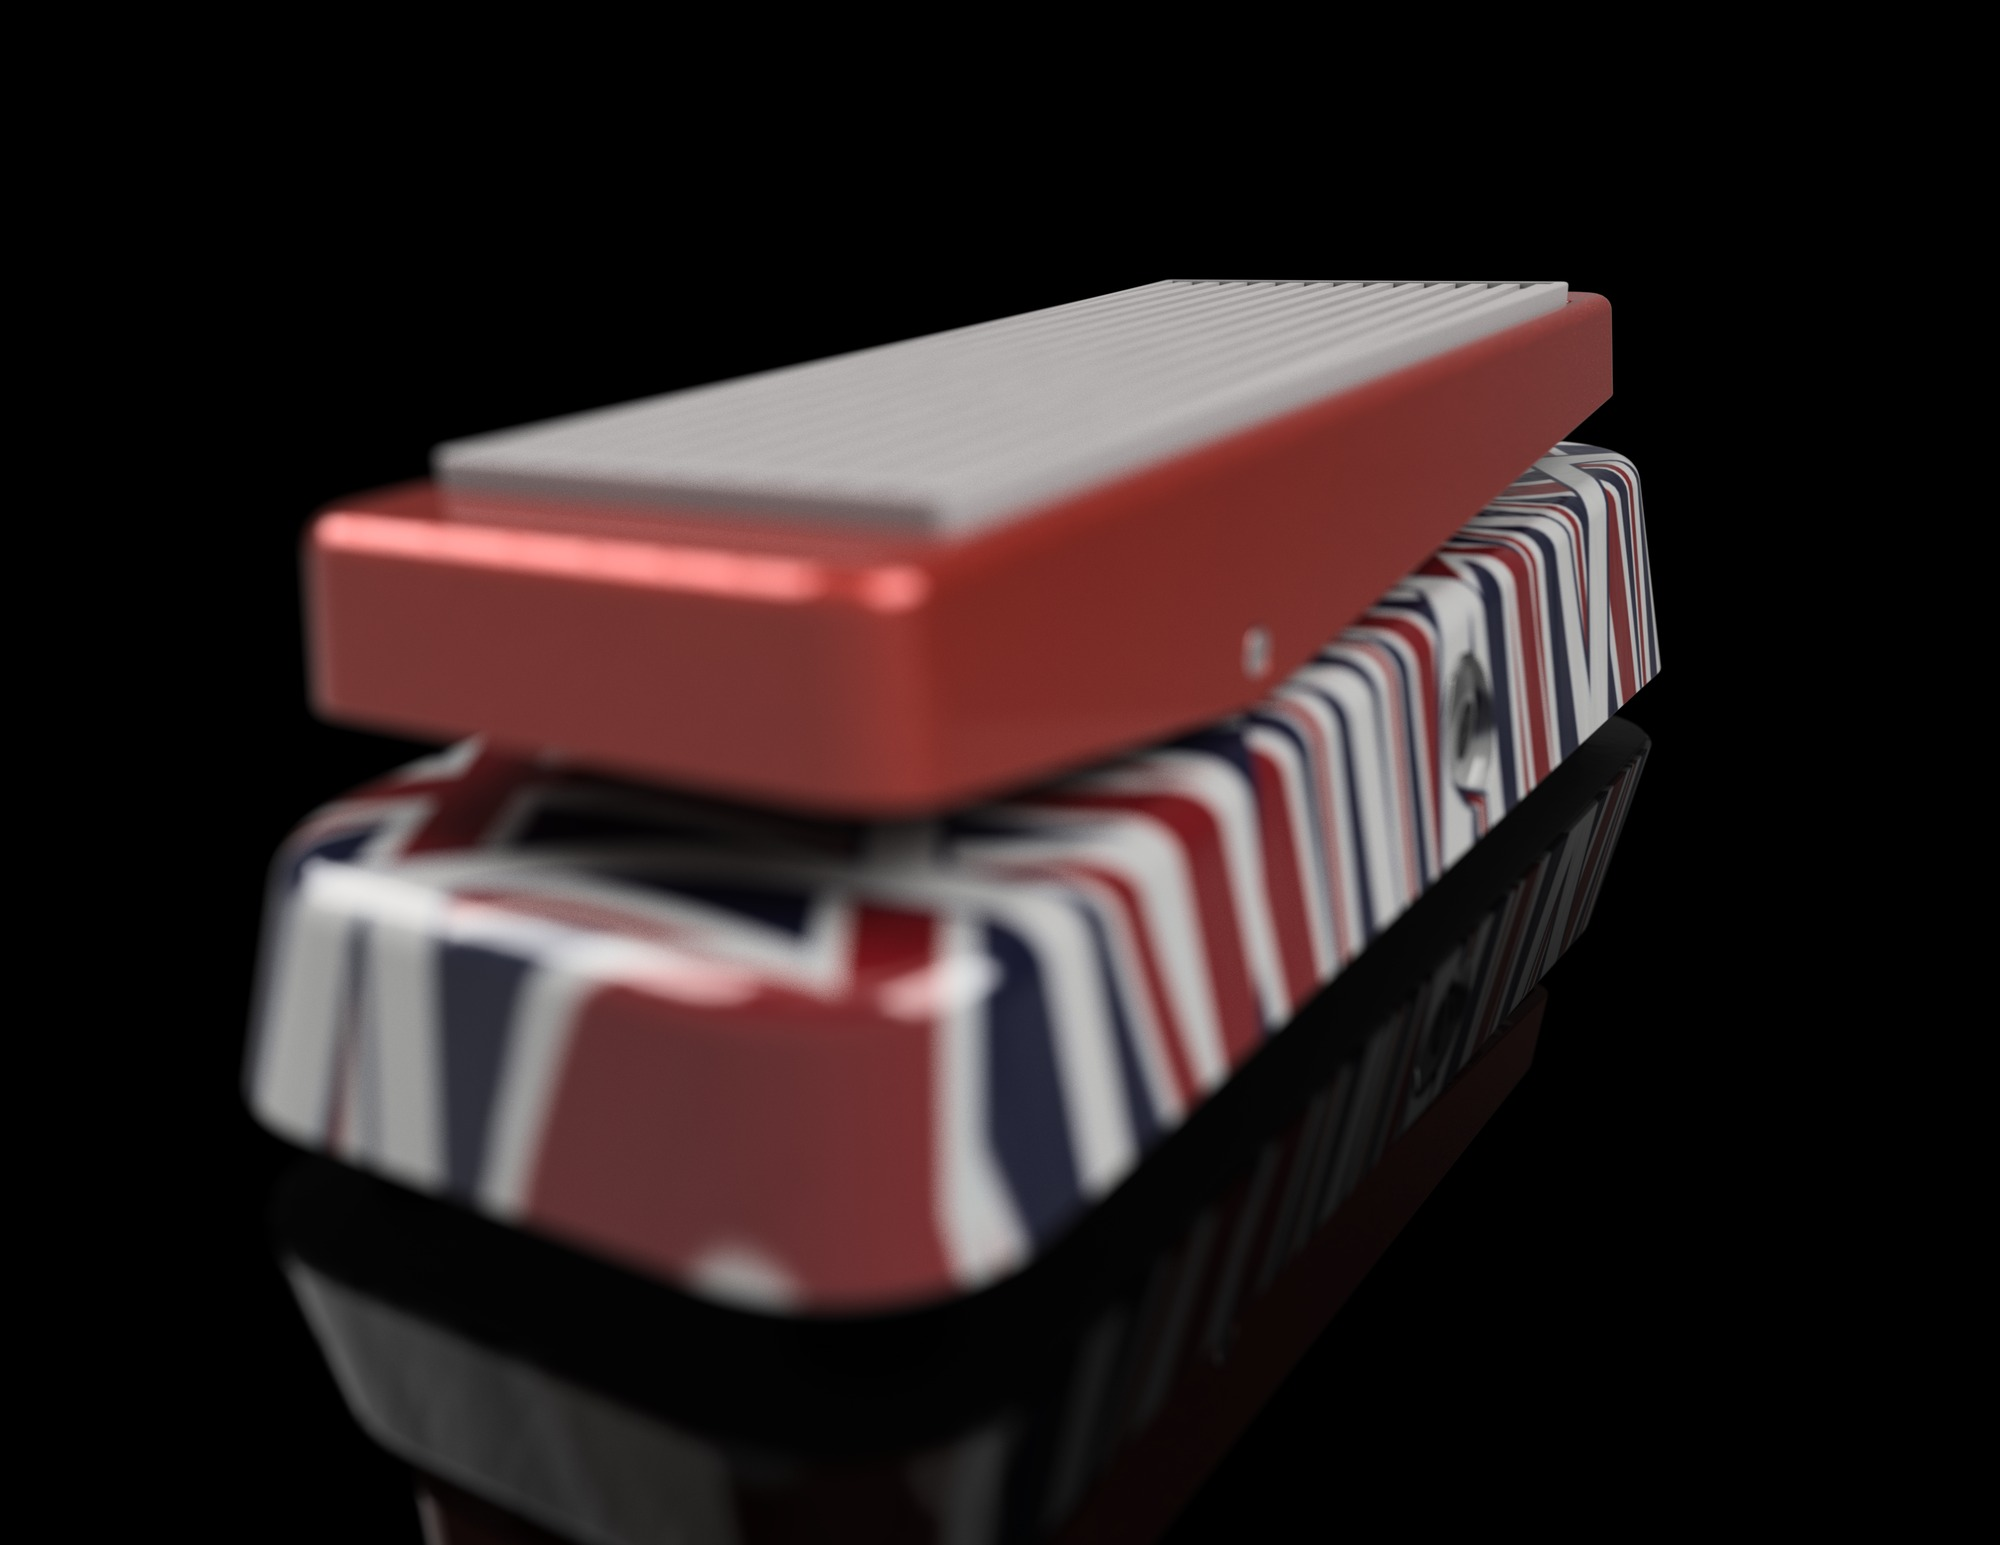 Union_jack_wah_2015-may-12_01-54-09pm-000_customizedview51865043